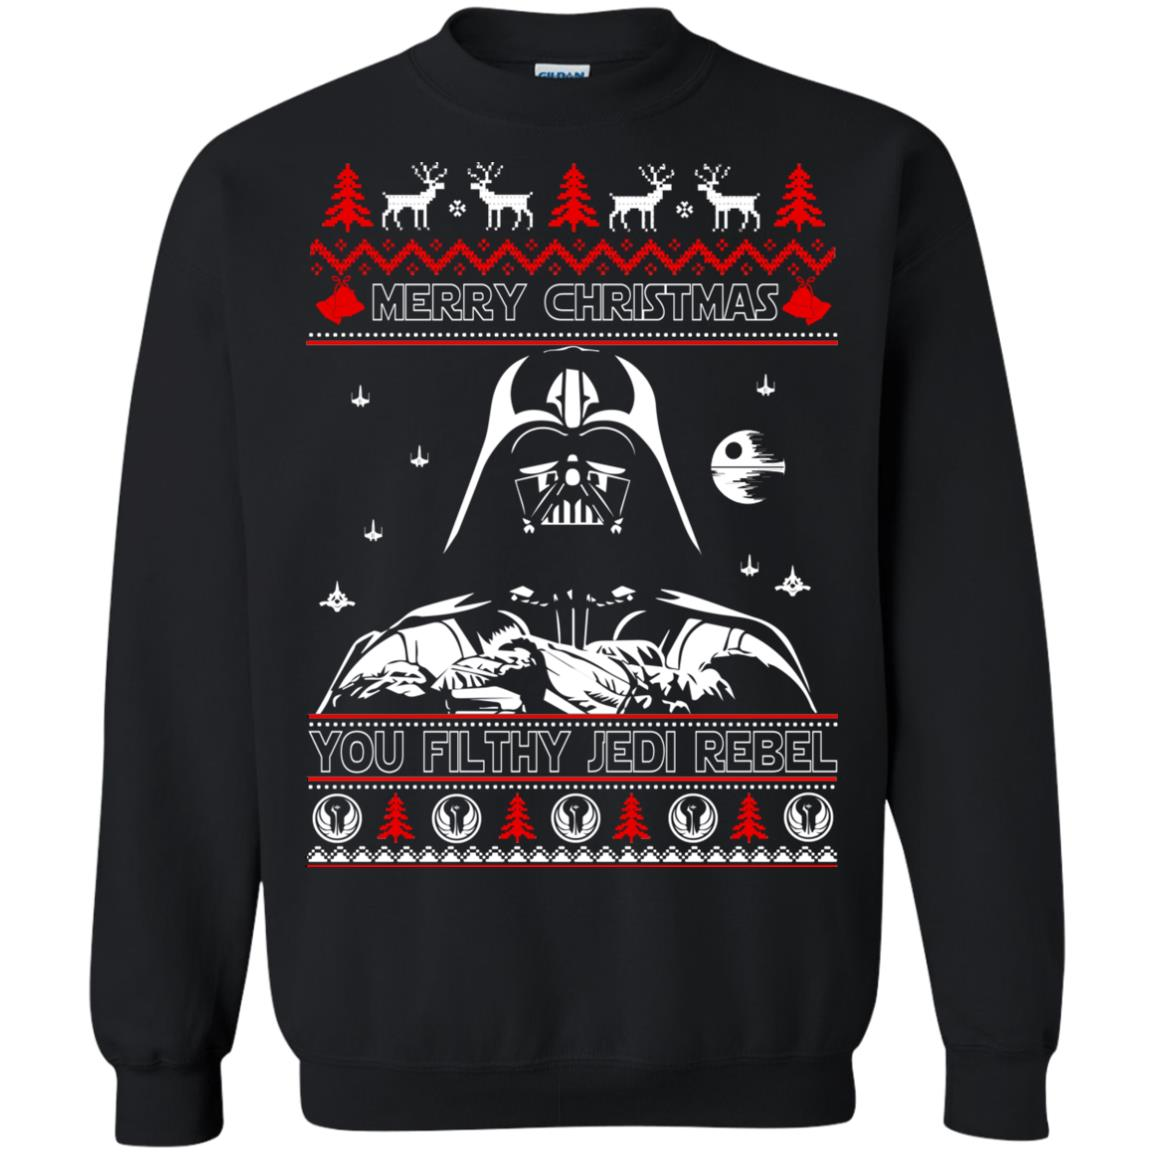 image 1788 - Darth Vader Merry Christmas You Filthy Jedi Rebel Ugly Sweater, Shirt